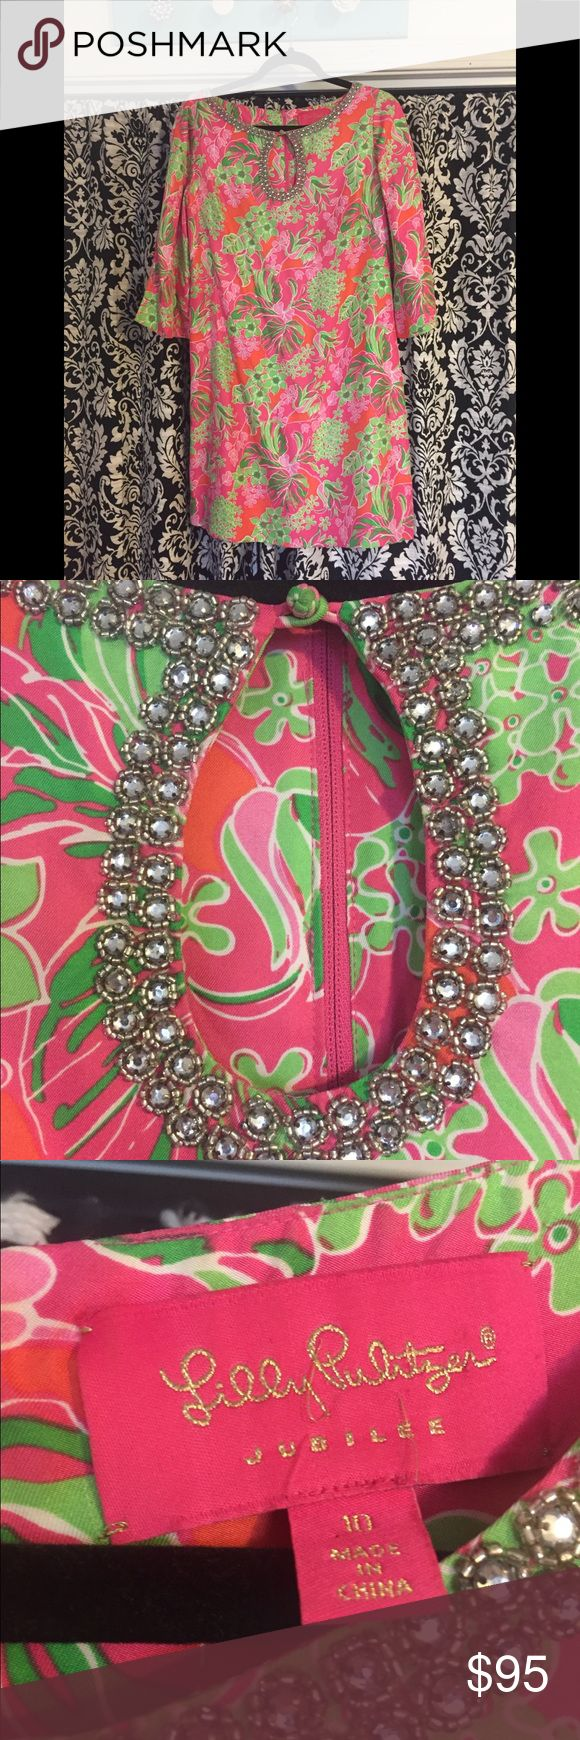 Lilly Pulitzer Vintage dress I think every beach going pool loving girl should own a Lilly Pulitzer. This is not the average cotton resort fare, this is a blinged out vintage classic pink and green embellished silk dress. Fully lined, 3/4 length bell sleeves, falls at are above knee depending on height. Size 10. IMO Lilly normally runs to a lean petite frame, but this dress is a solid 10. Tiny flaw pictured where rhinestone trim is missing absolutely unnoticeable unless you're looking for…